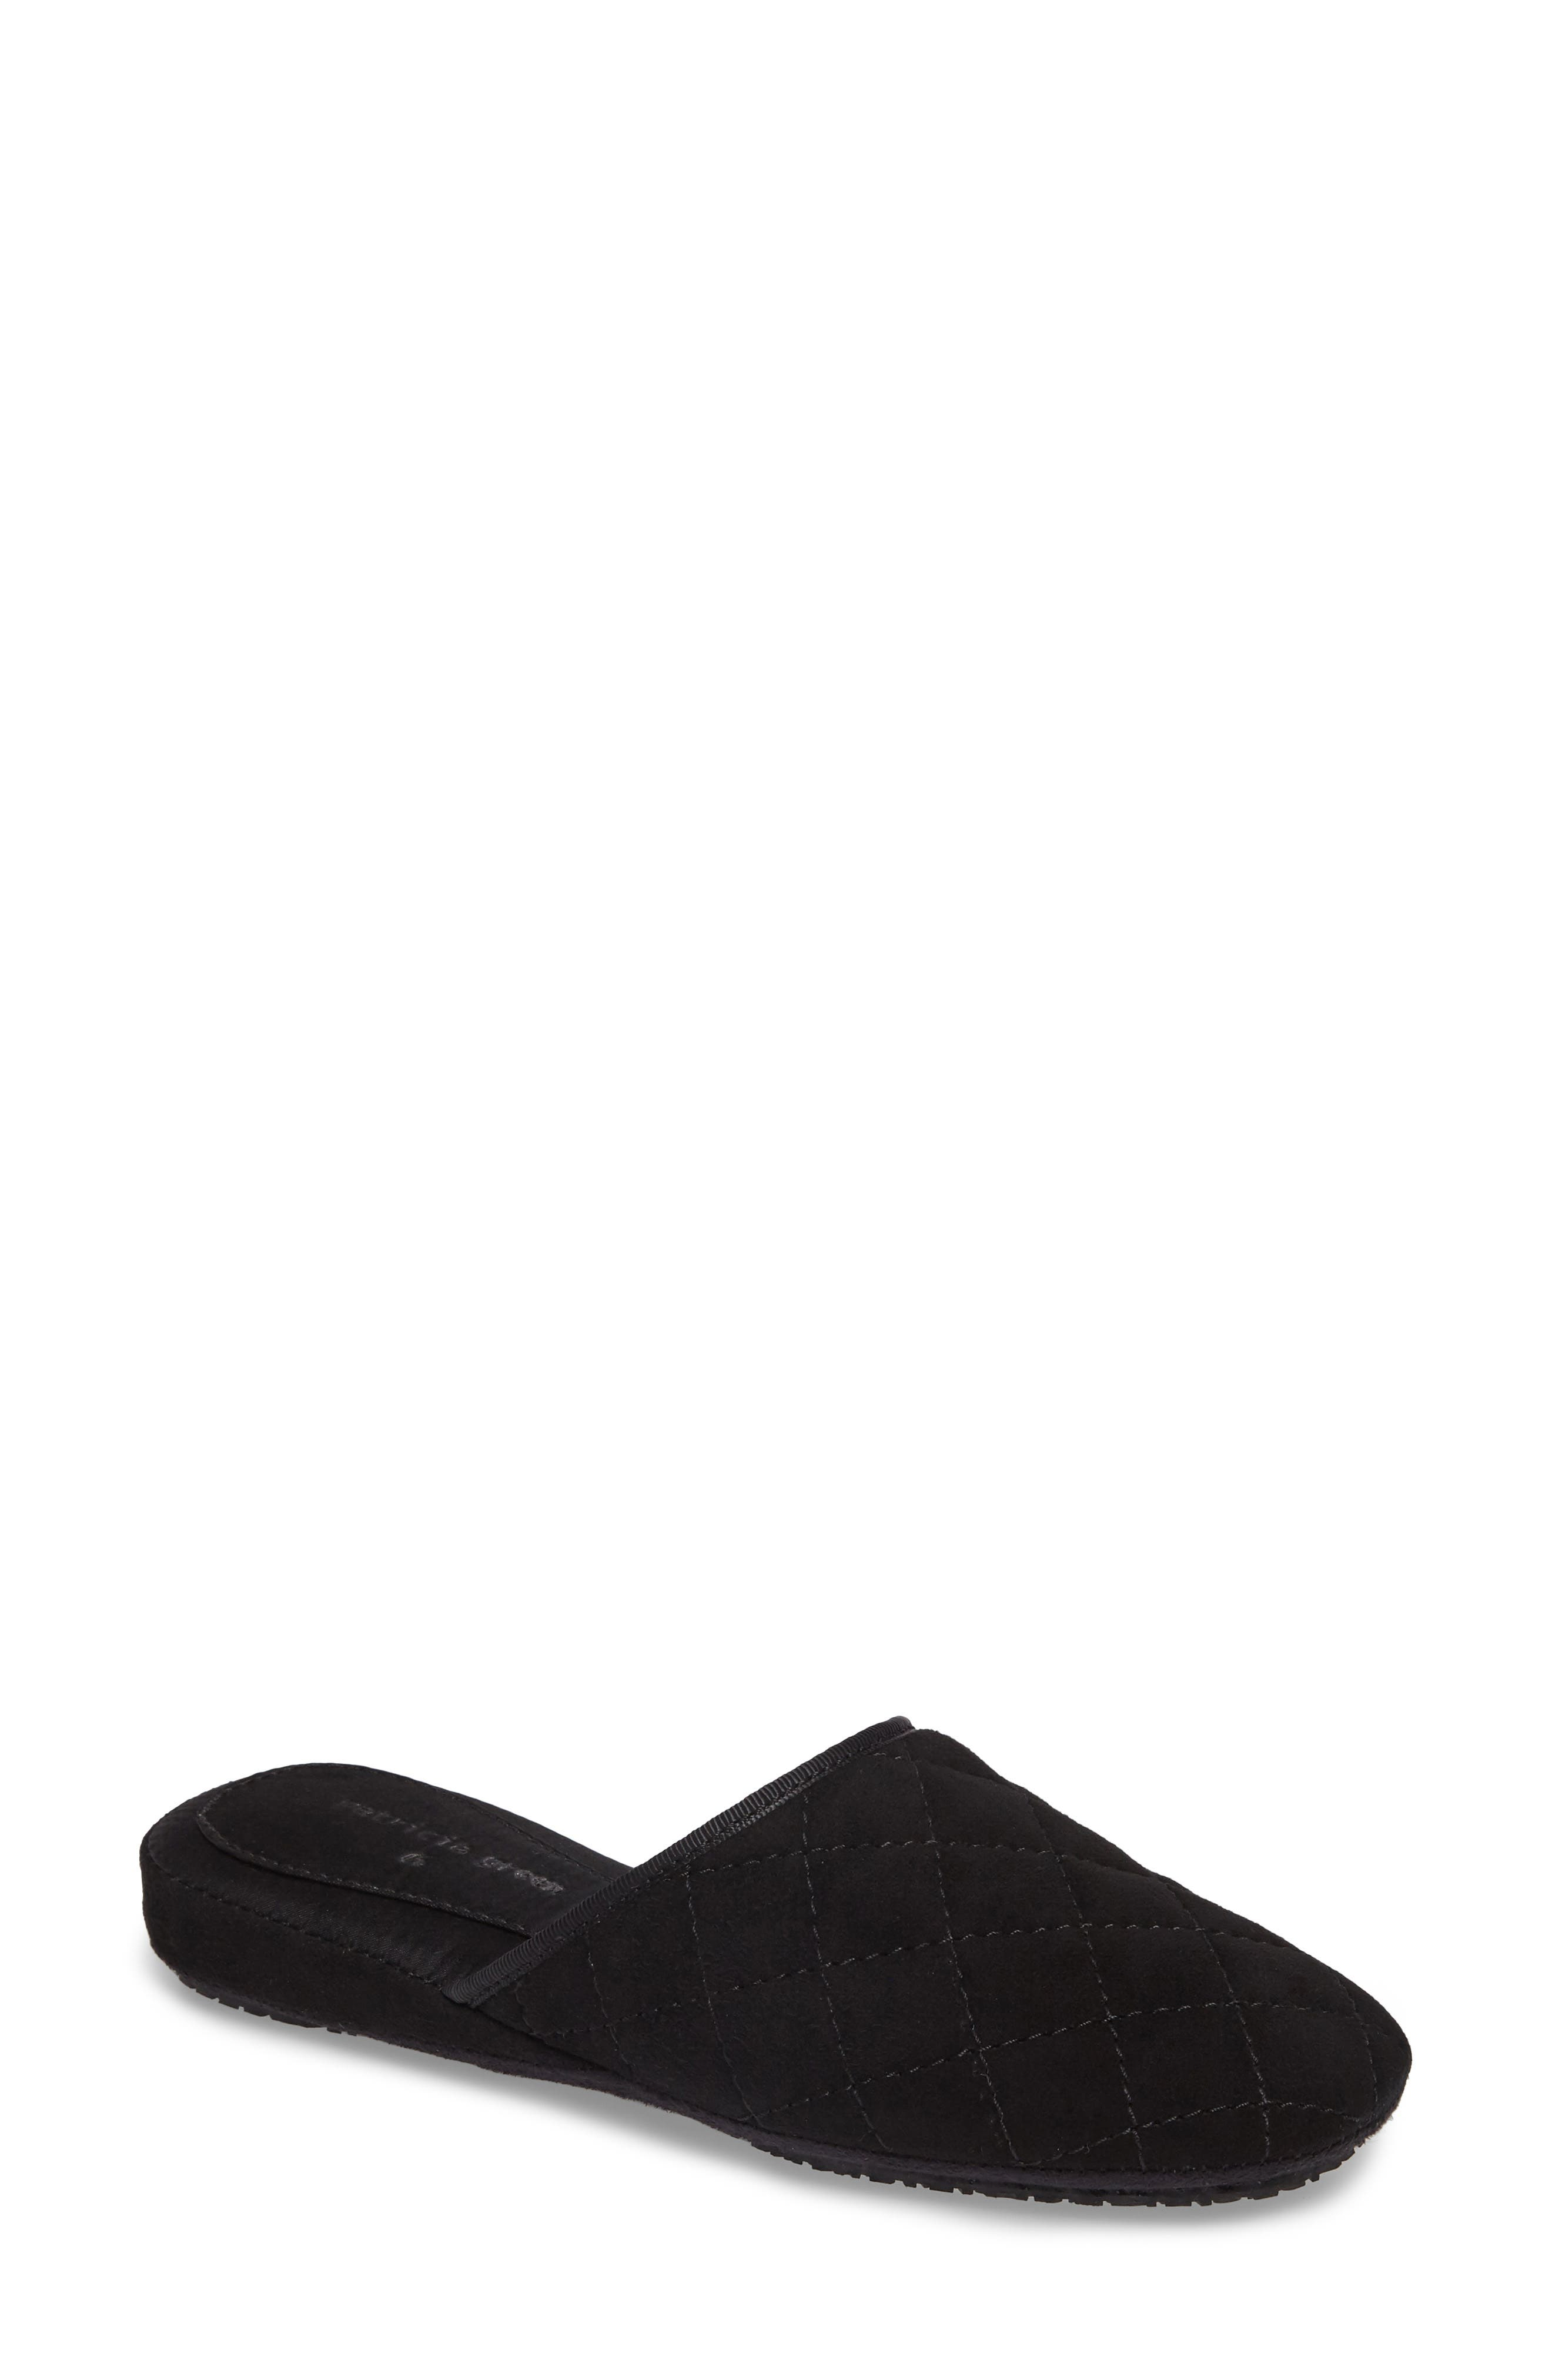 Coco Slipper,                             Main thumbnail 1, color,                             BLACK SUEDE